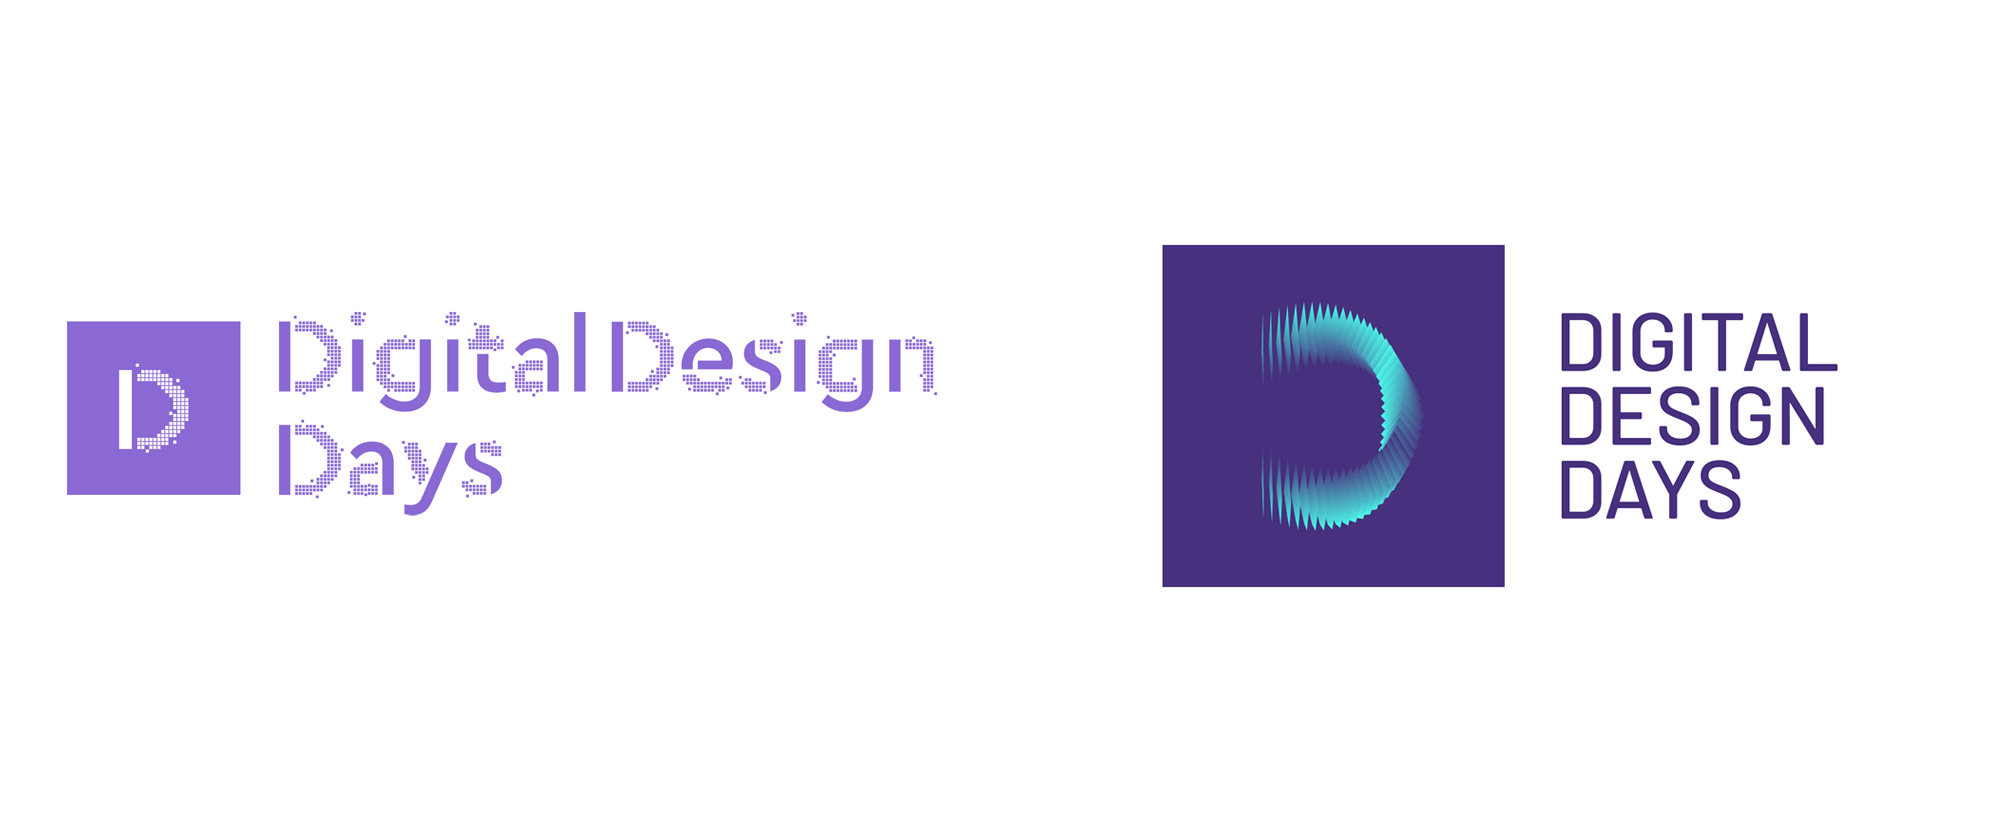 New Logo and Identity for Digital Design Days by jekyll & hyde